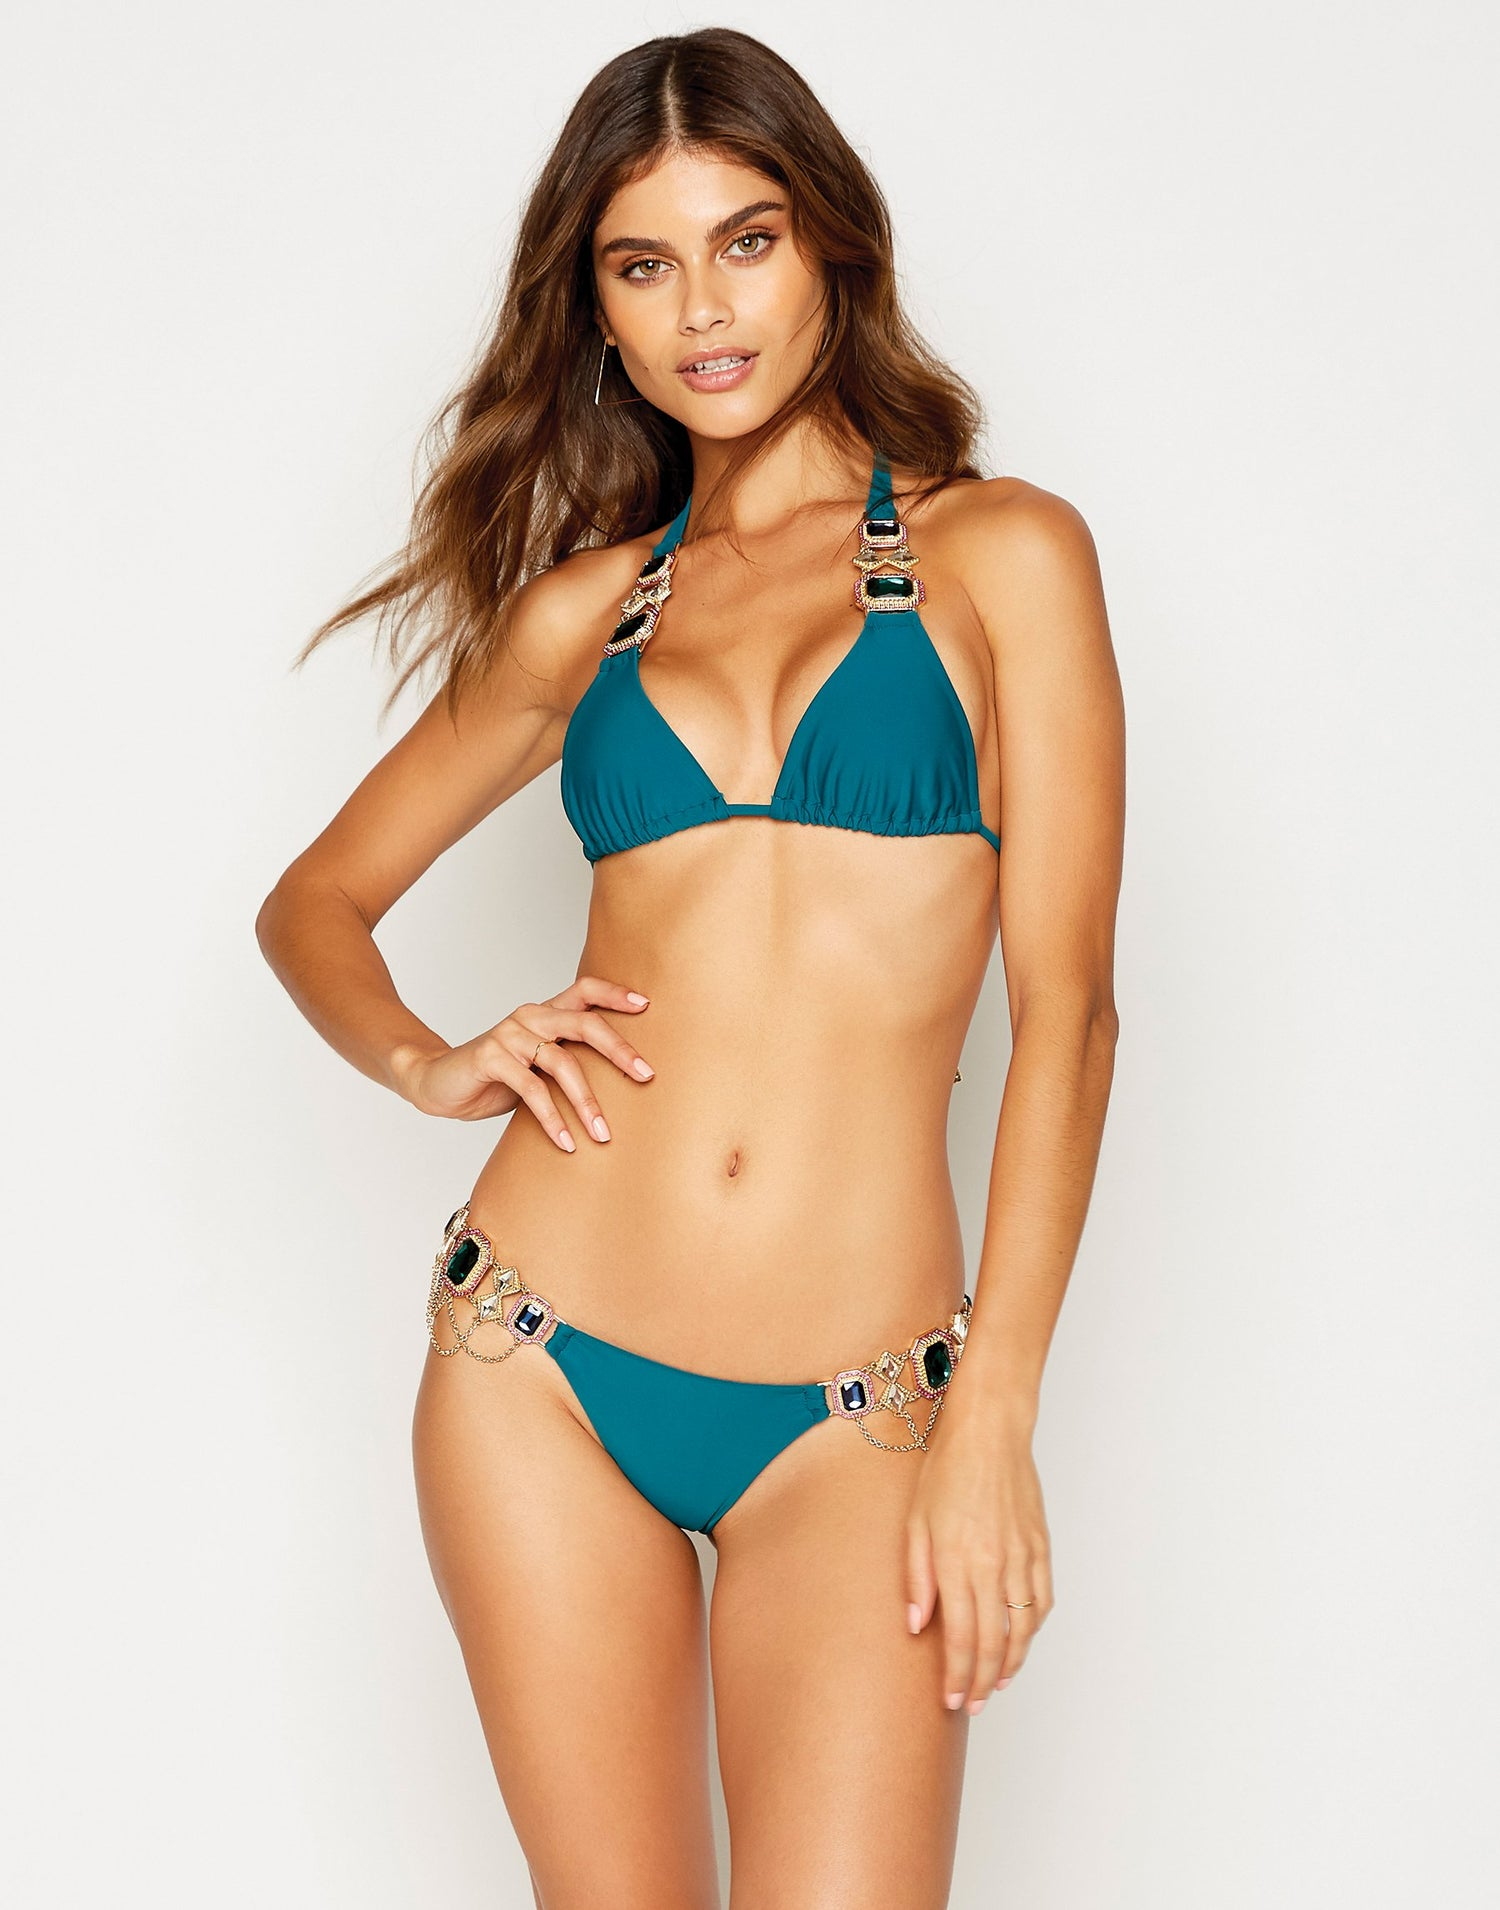 Jazmin Halter Bikini Top in Teal with Hardware - front view